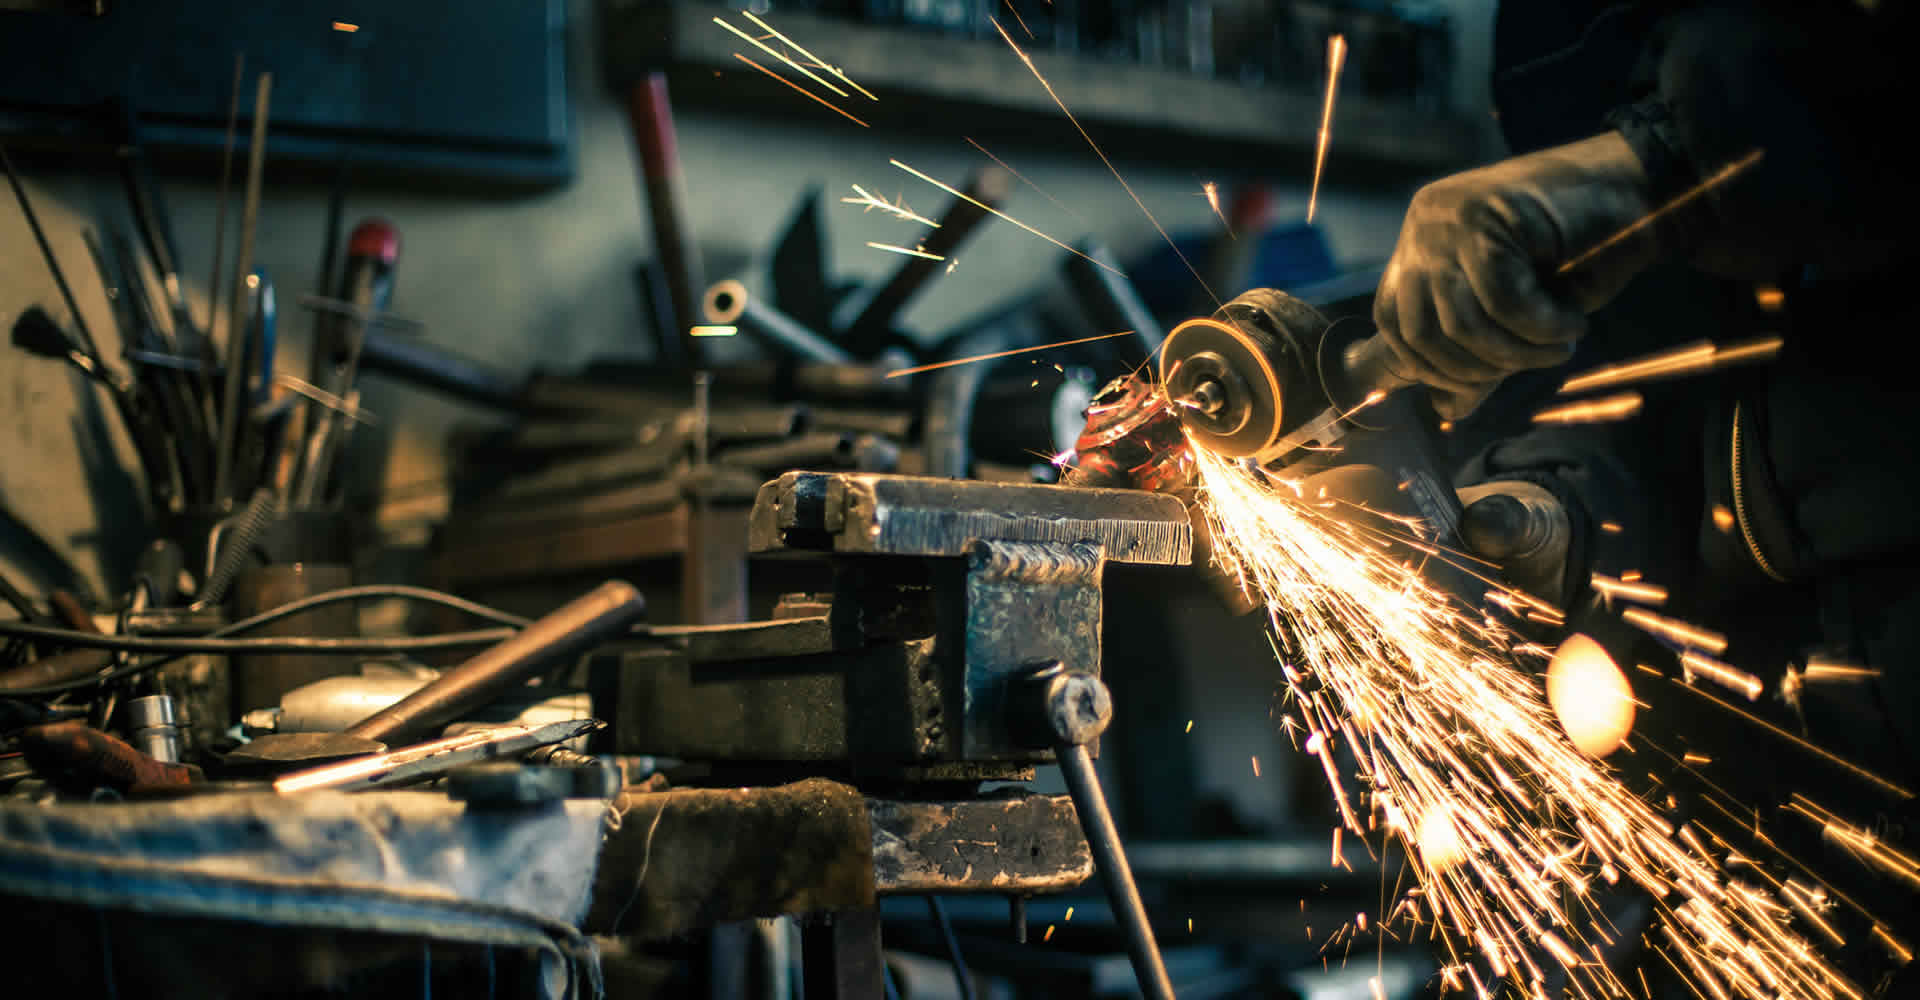 The UK manufacturing industry: cashing in with Big Data?